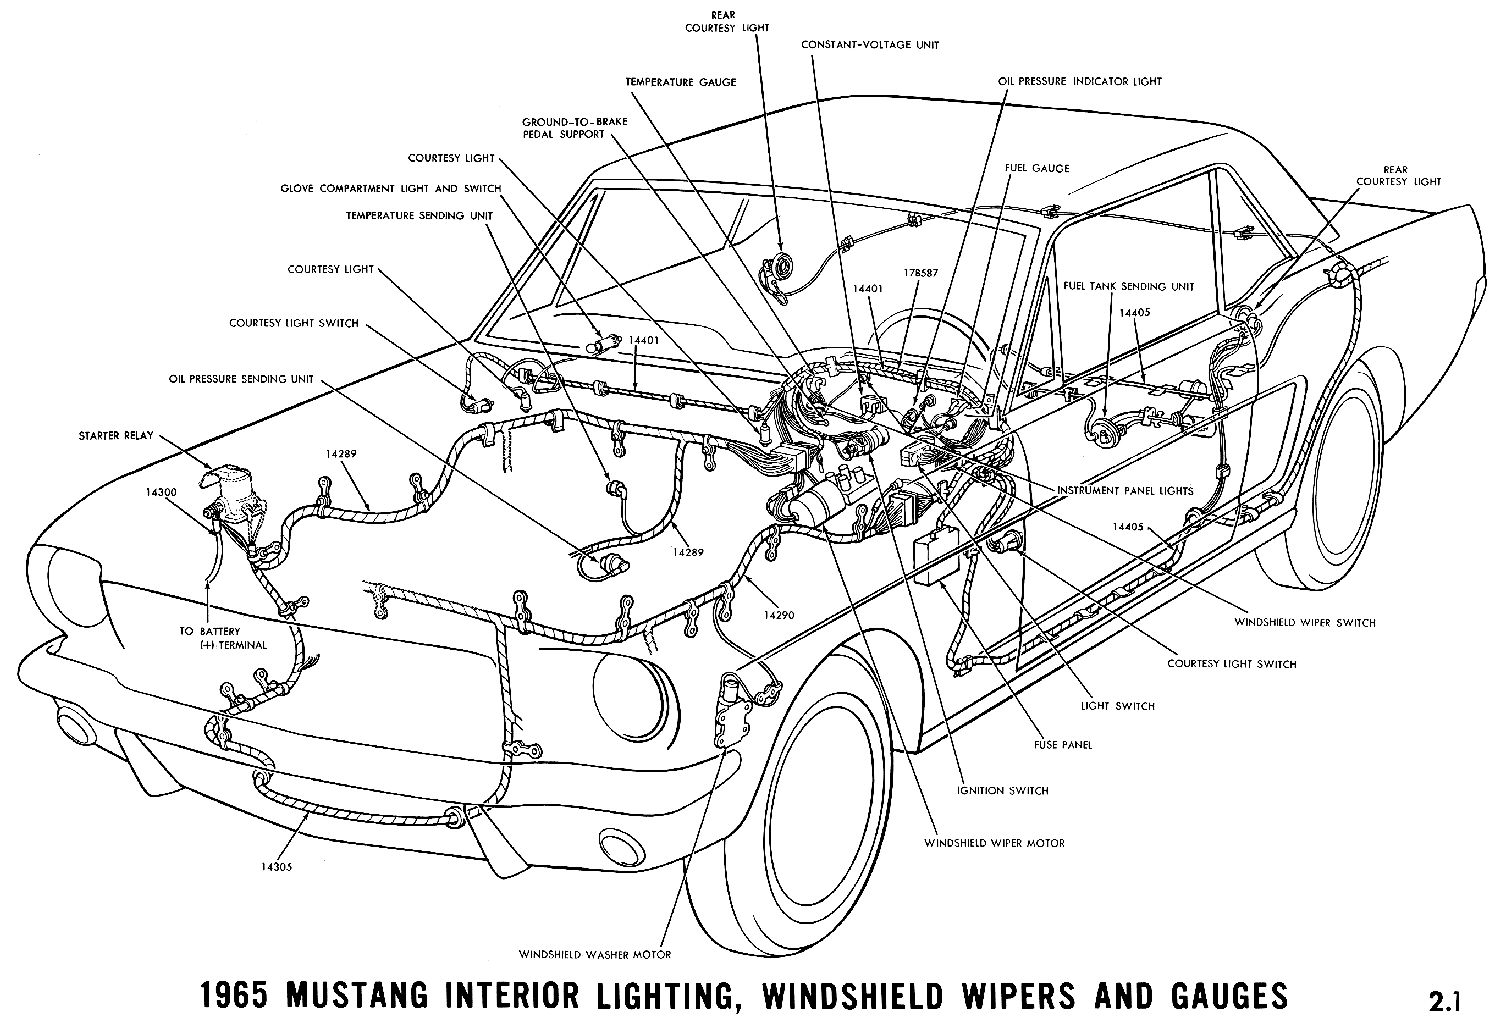 courtesy light wiring diagram for 1966 mustang